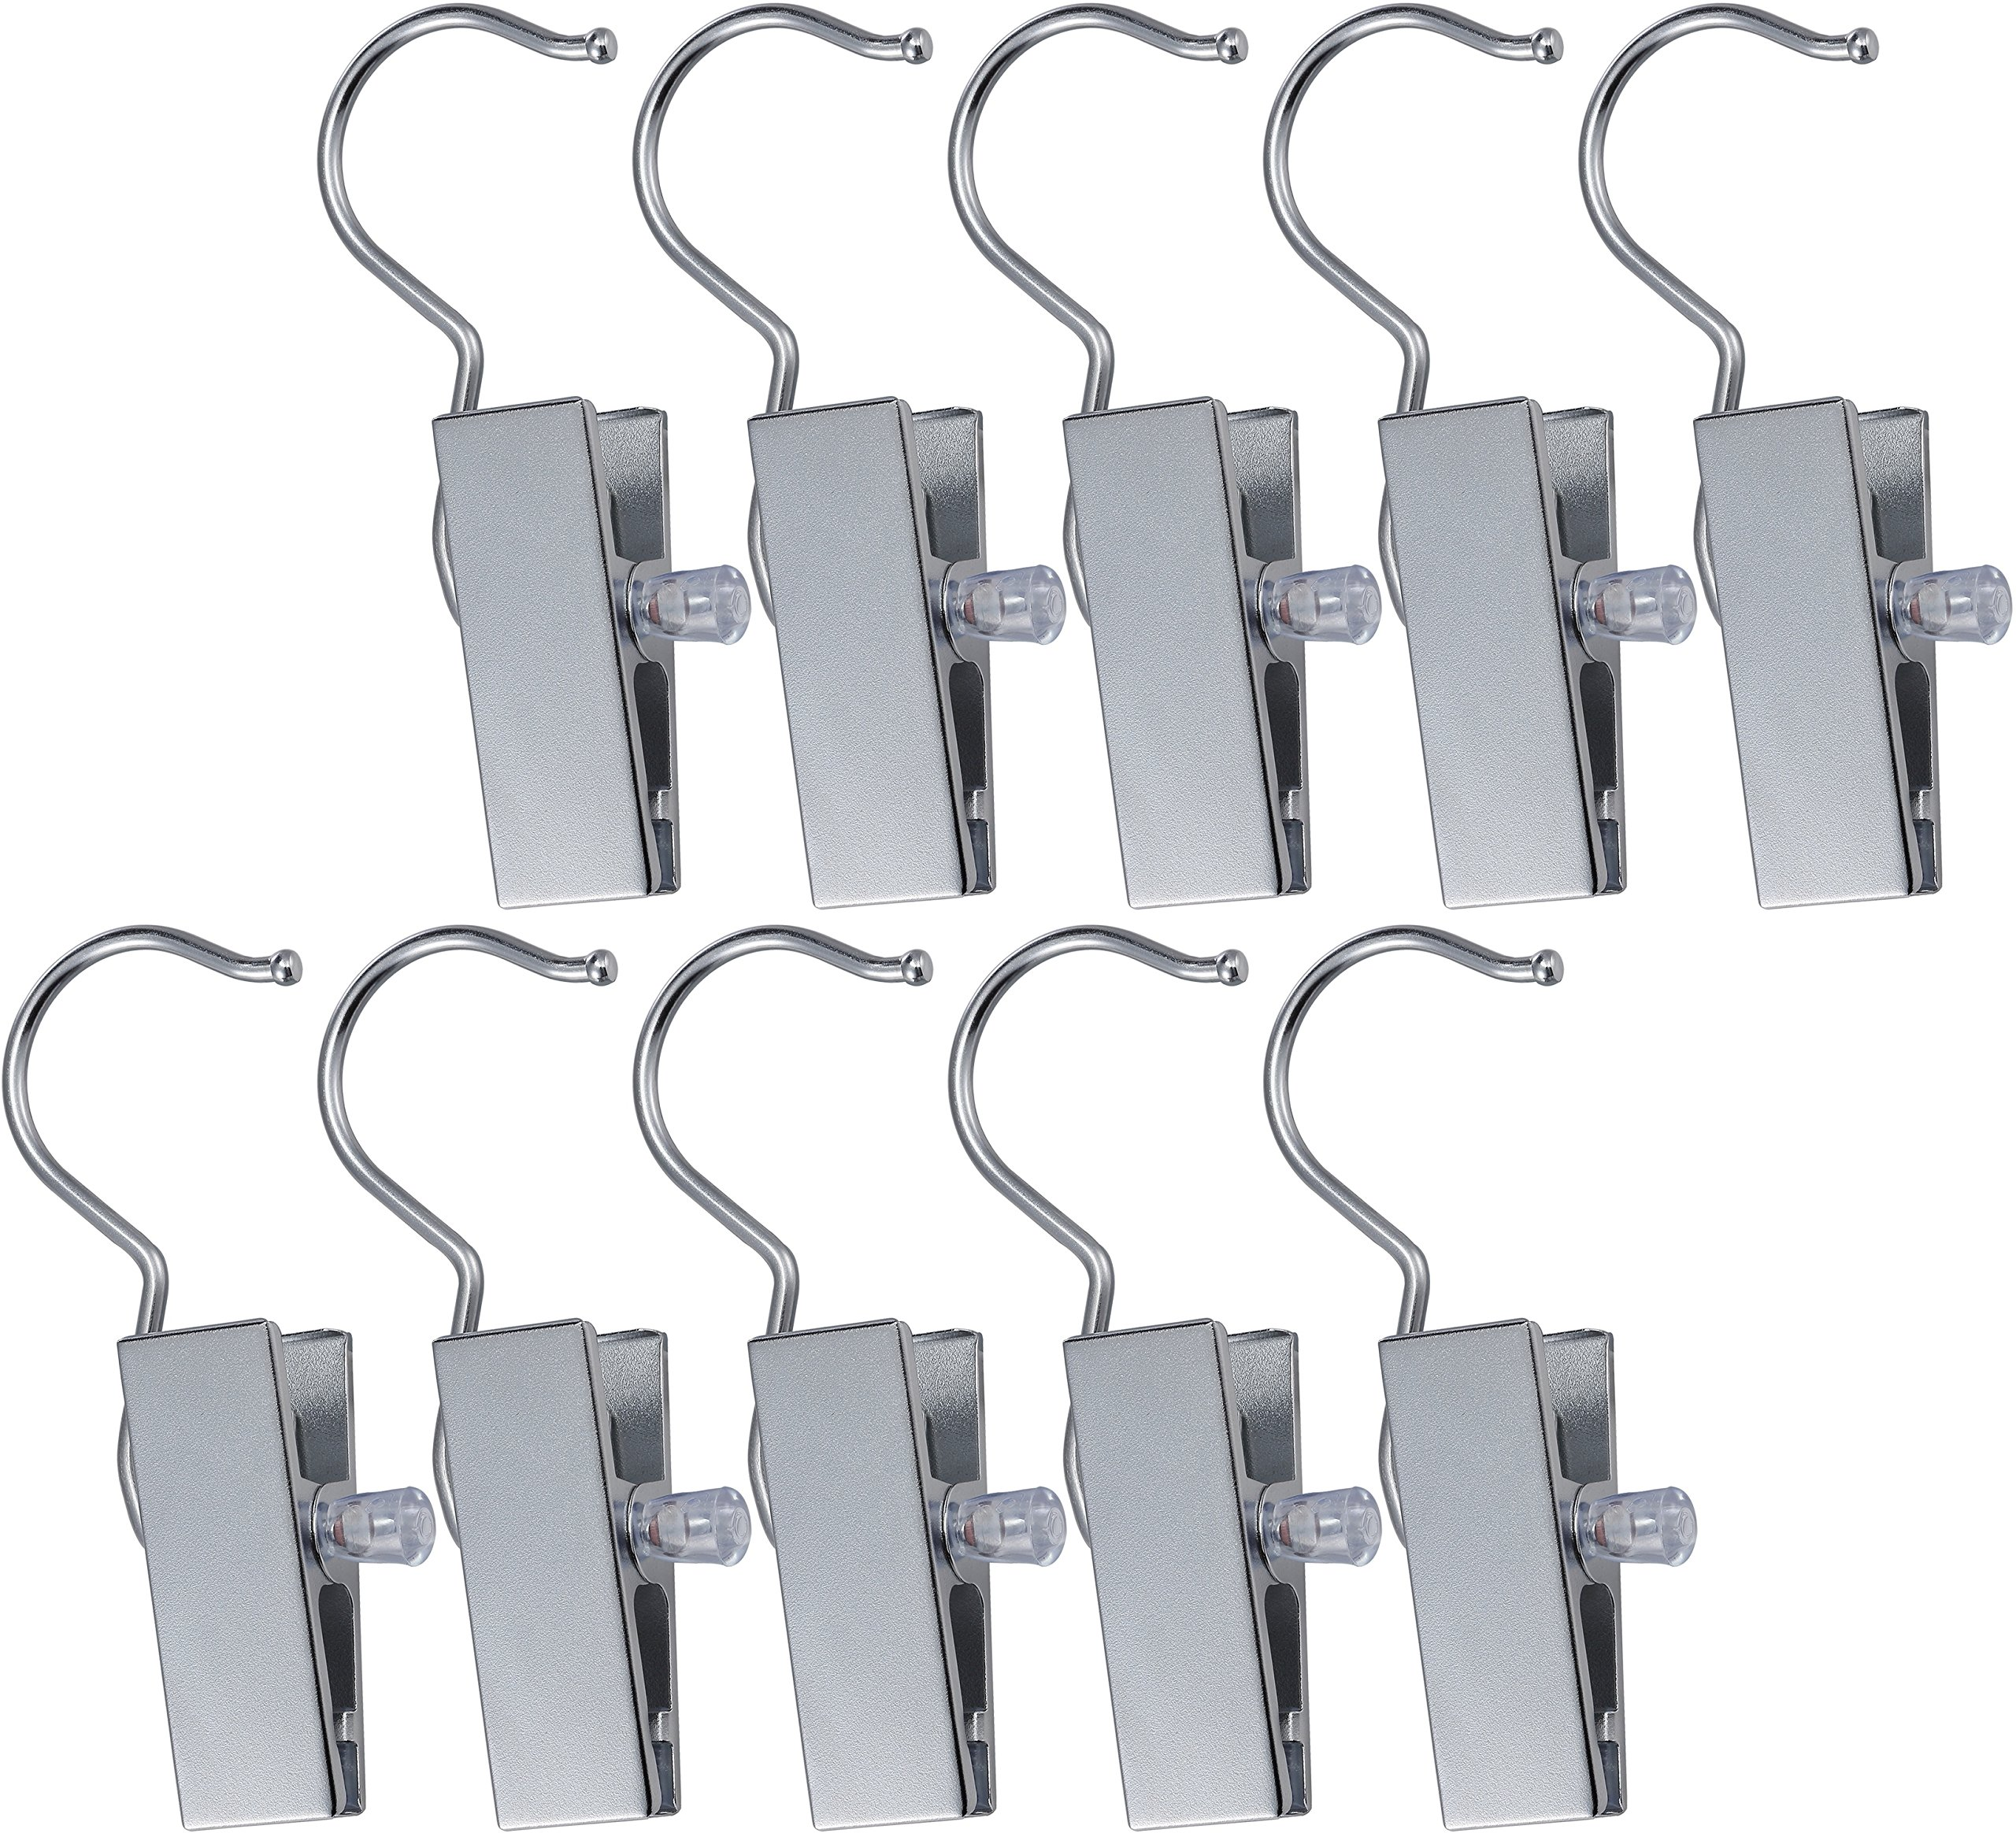 10 Boot Organizer Hanger Clips and Clip Hooks for Hanging Clothes Laundry Clothing Rack Dryer Set